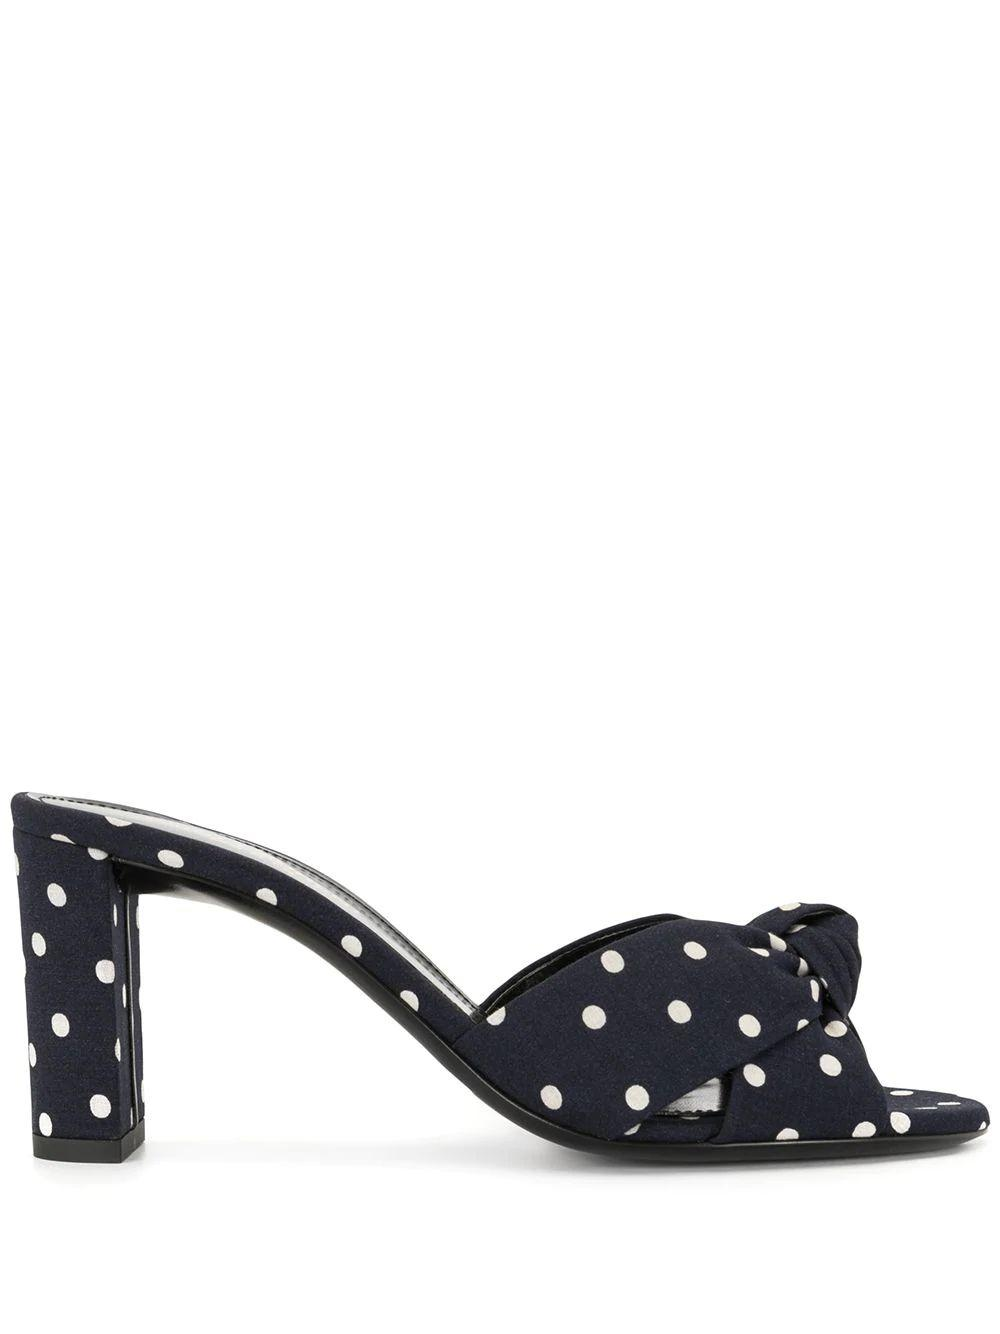 Bianca 75mm Polka Dot Mule